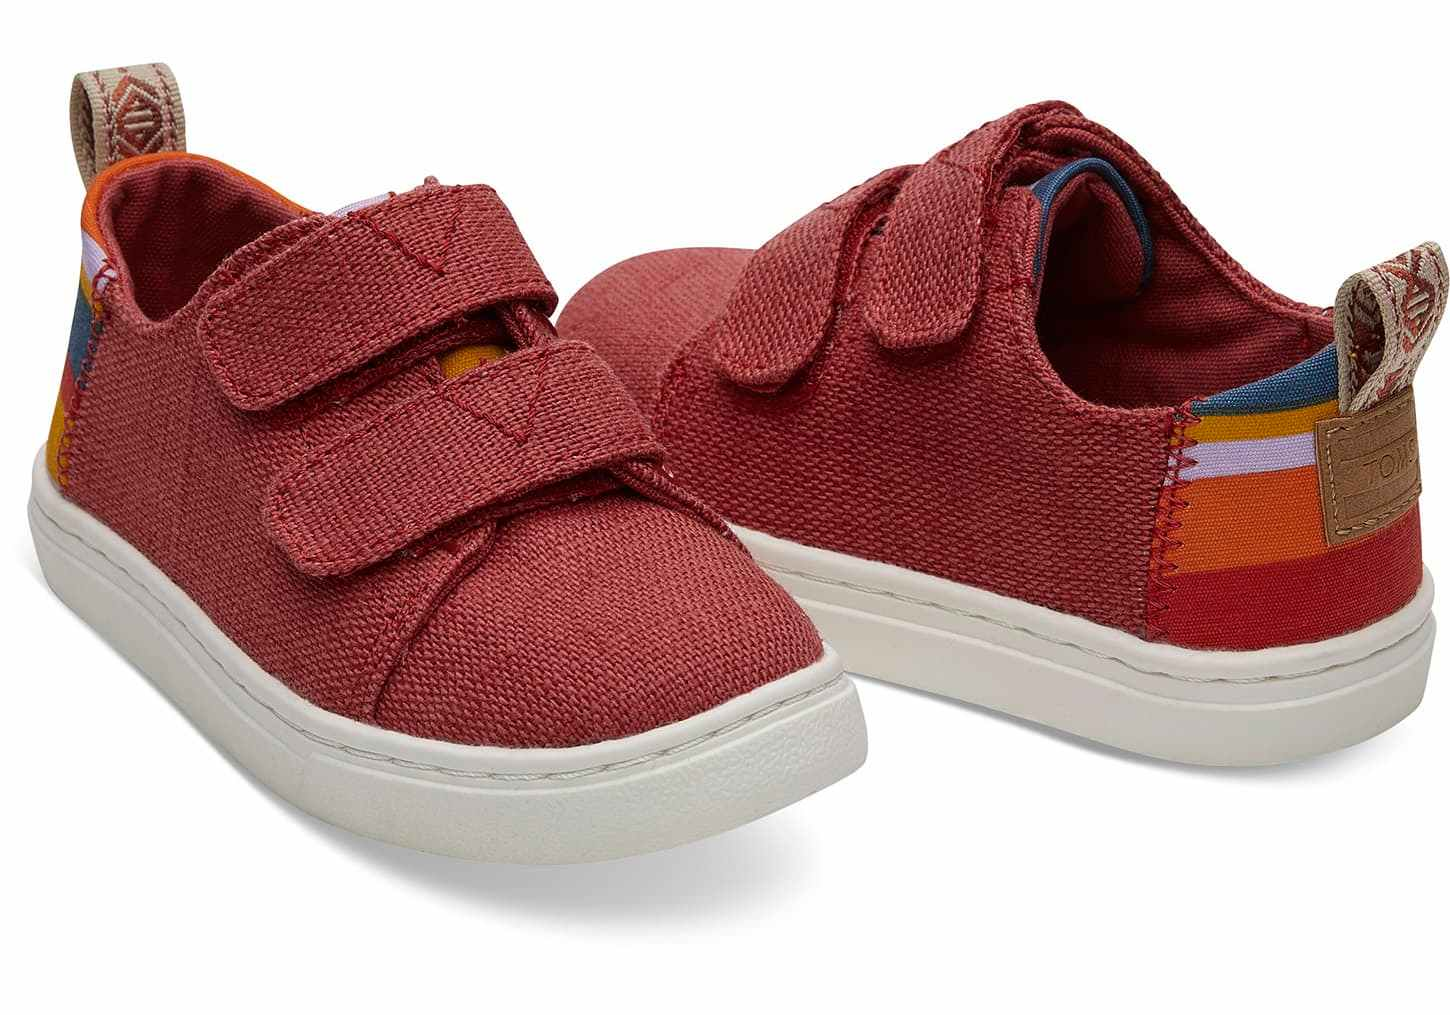 95d052250a1 The Best Kids Shoes for Toddlers